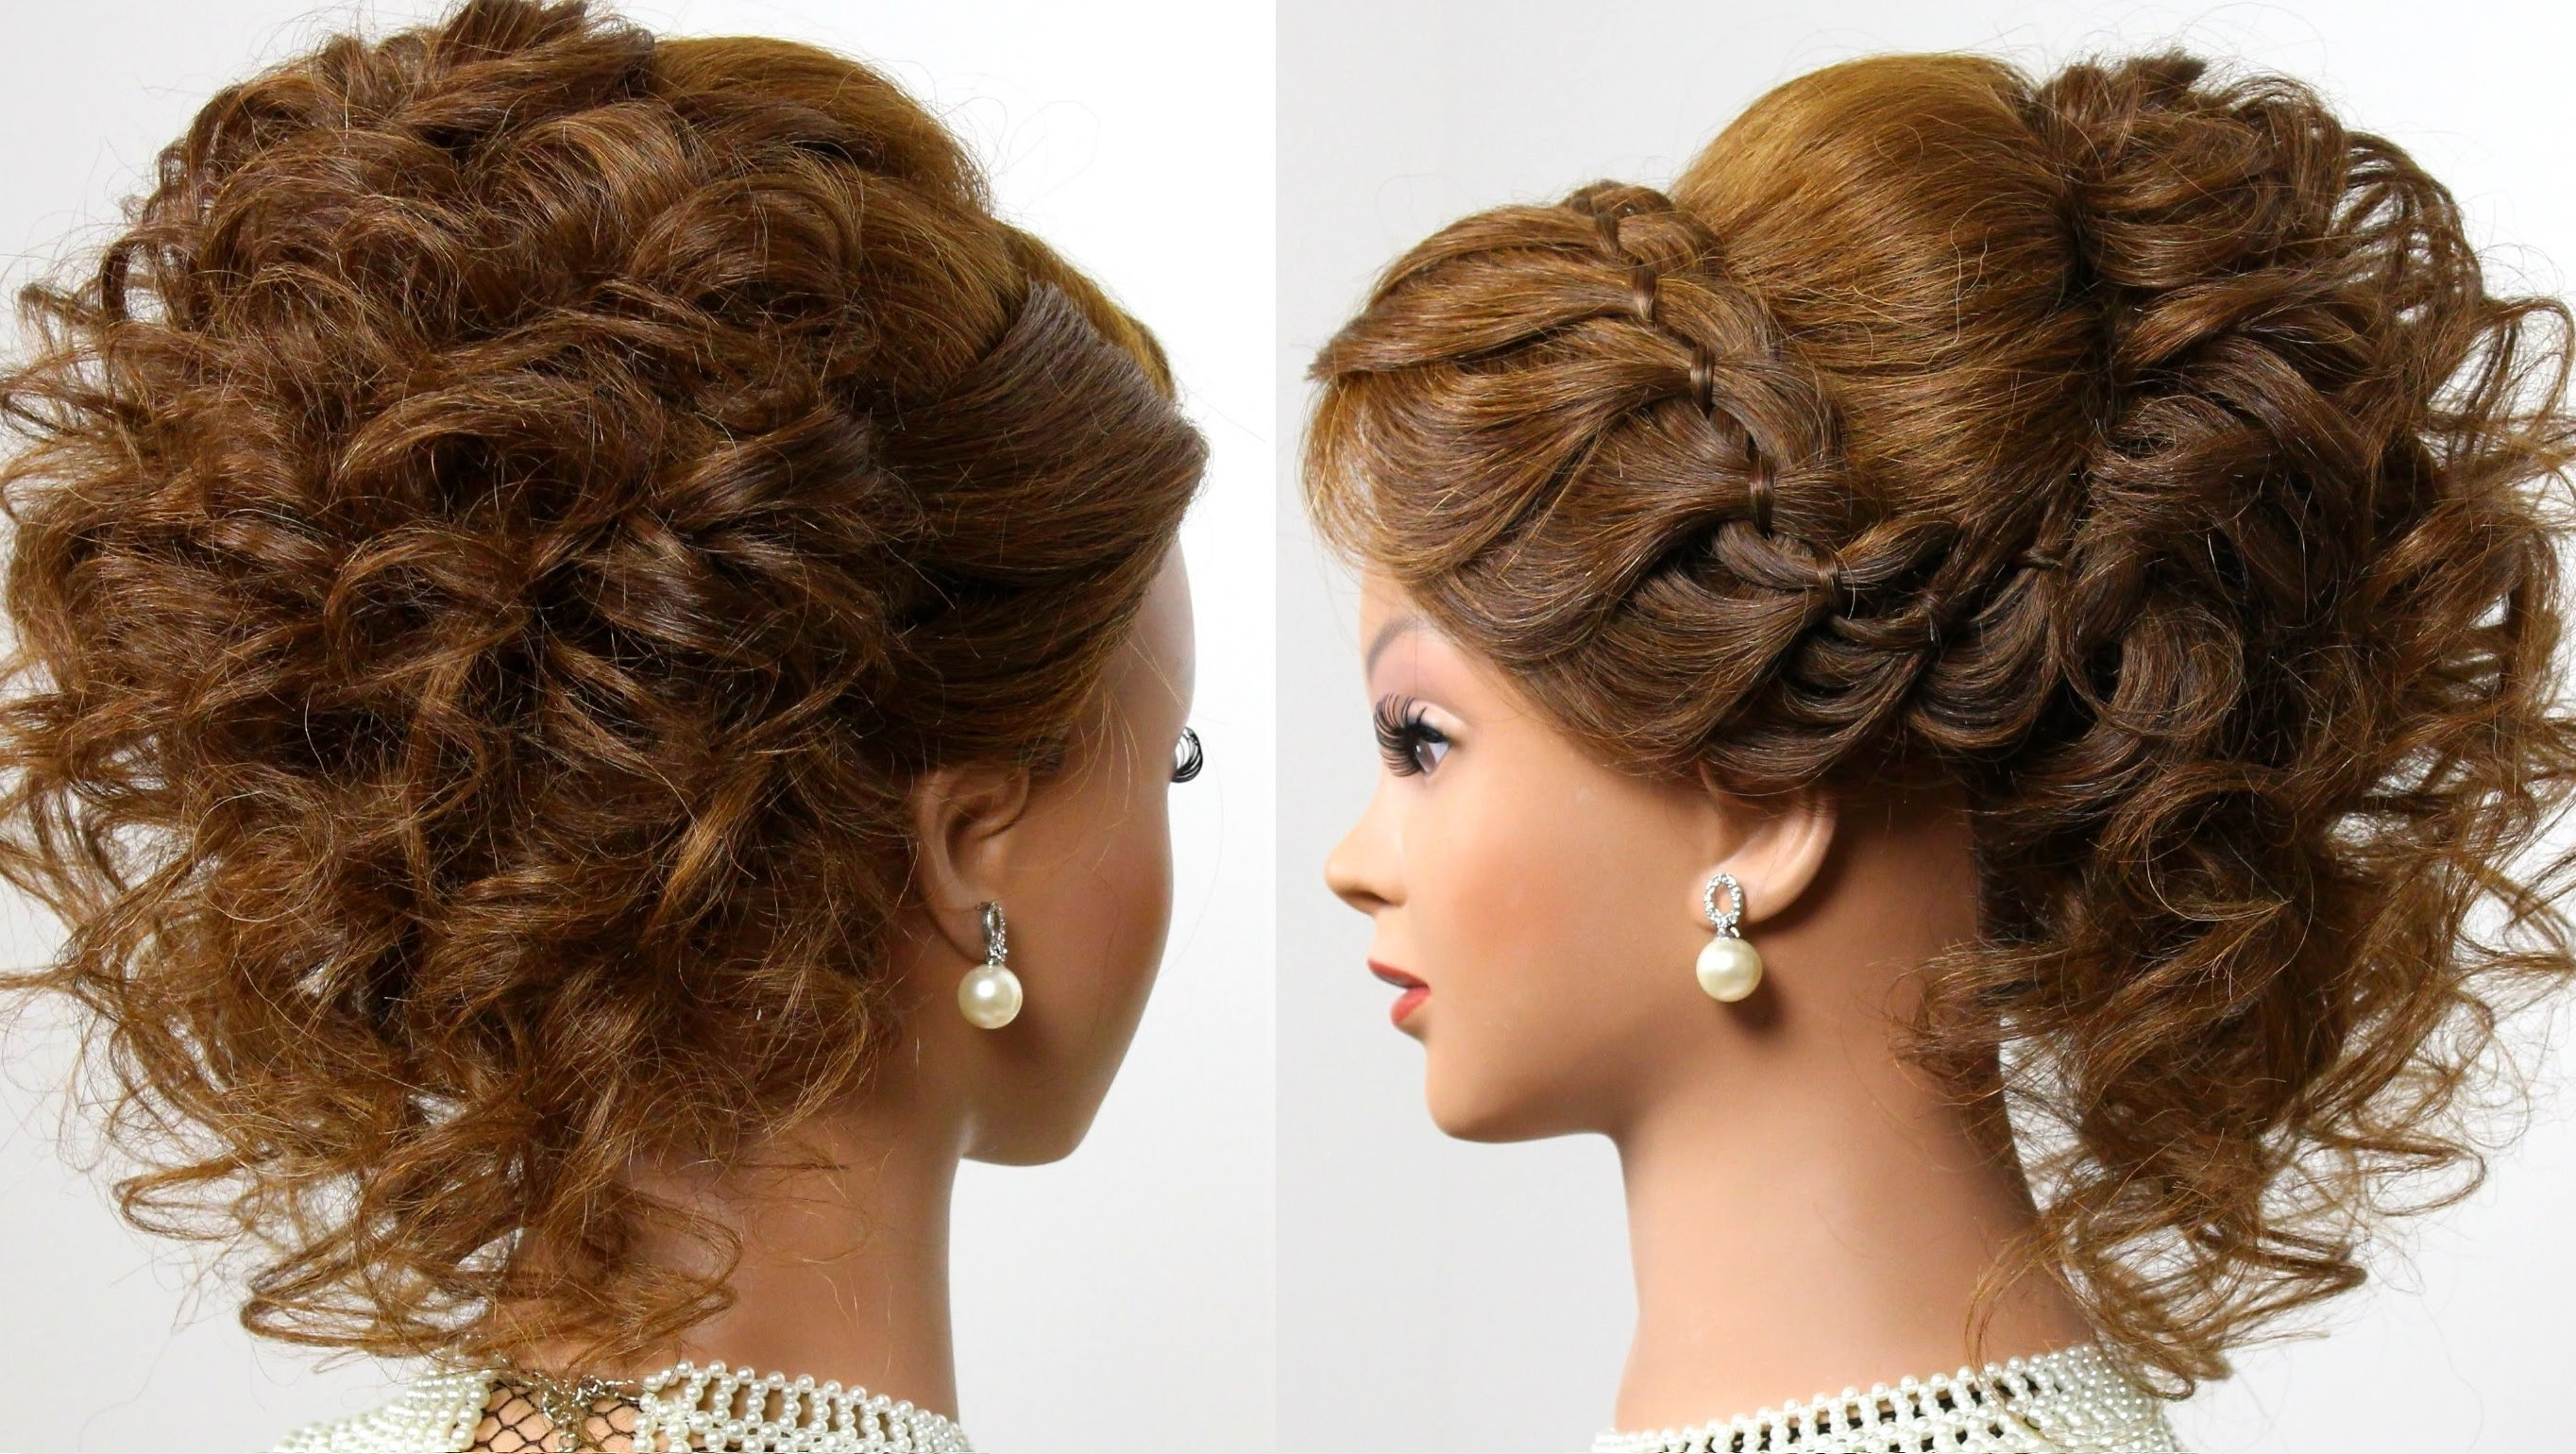 Beautiful Updos For Medium Hair – Hairstyle For Women & Man With Regard To Women's Updo Hairstyles (View 7 of 15)